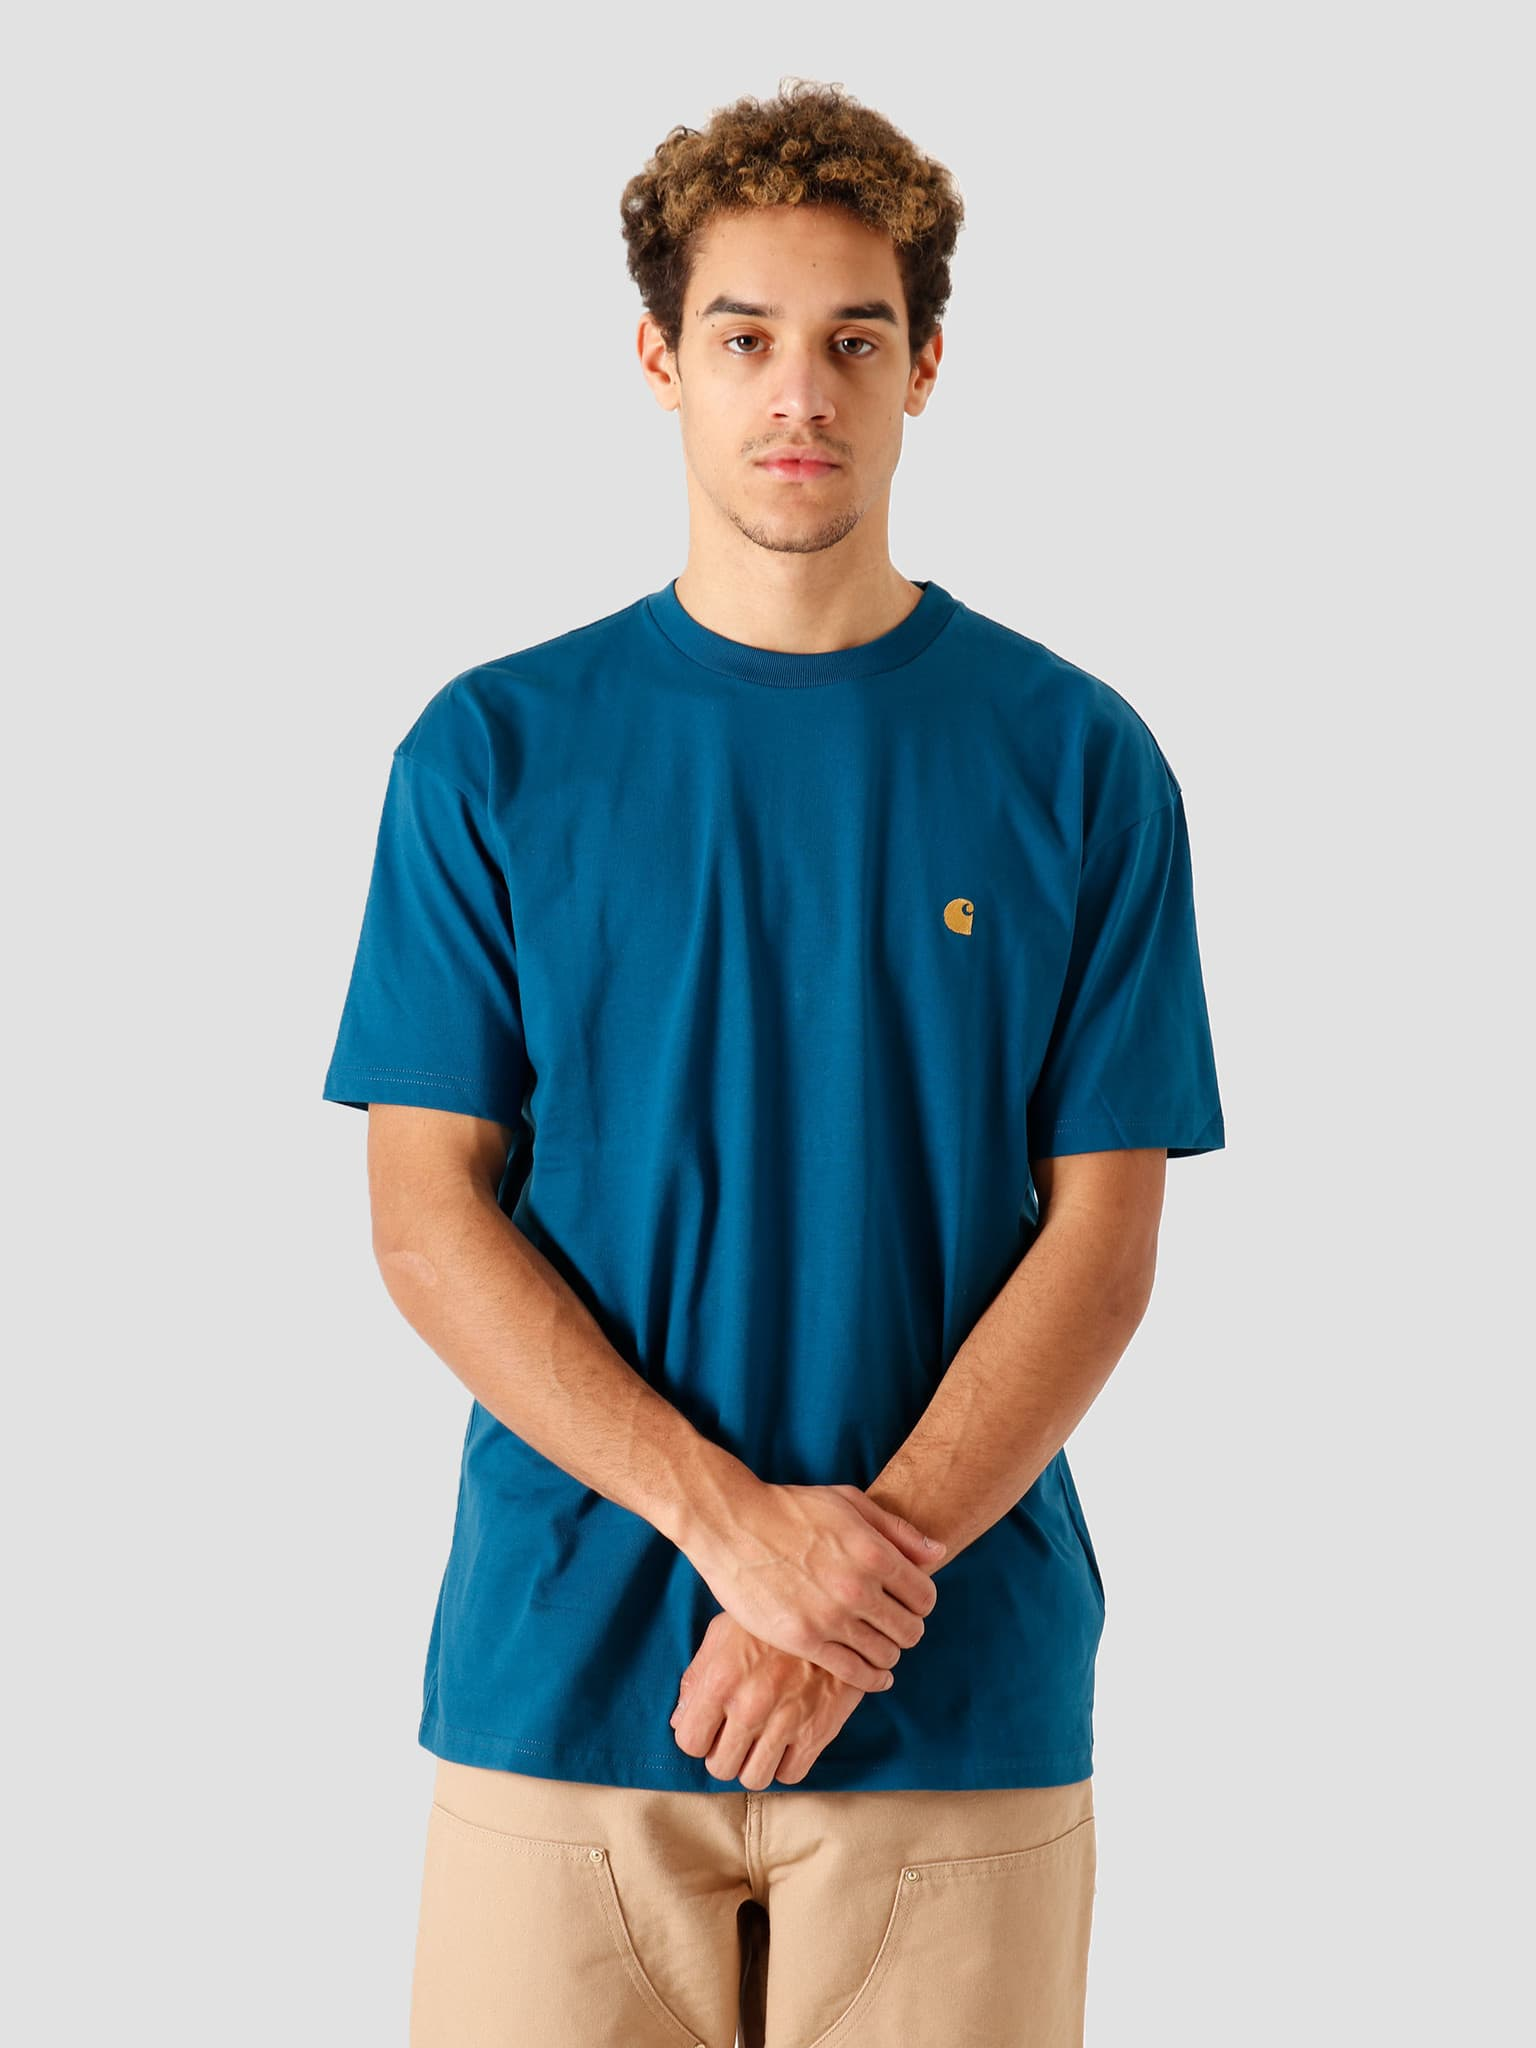 SS Chase T Shirt Corse Gold I026391-88890